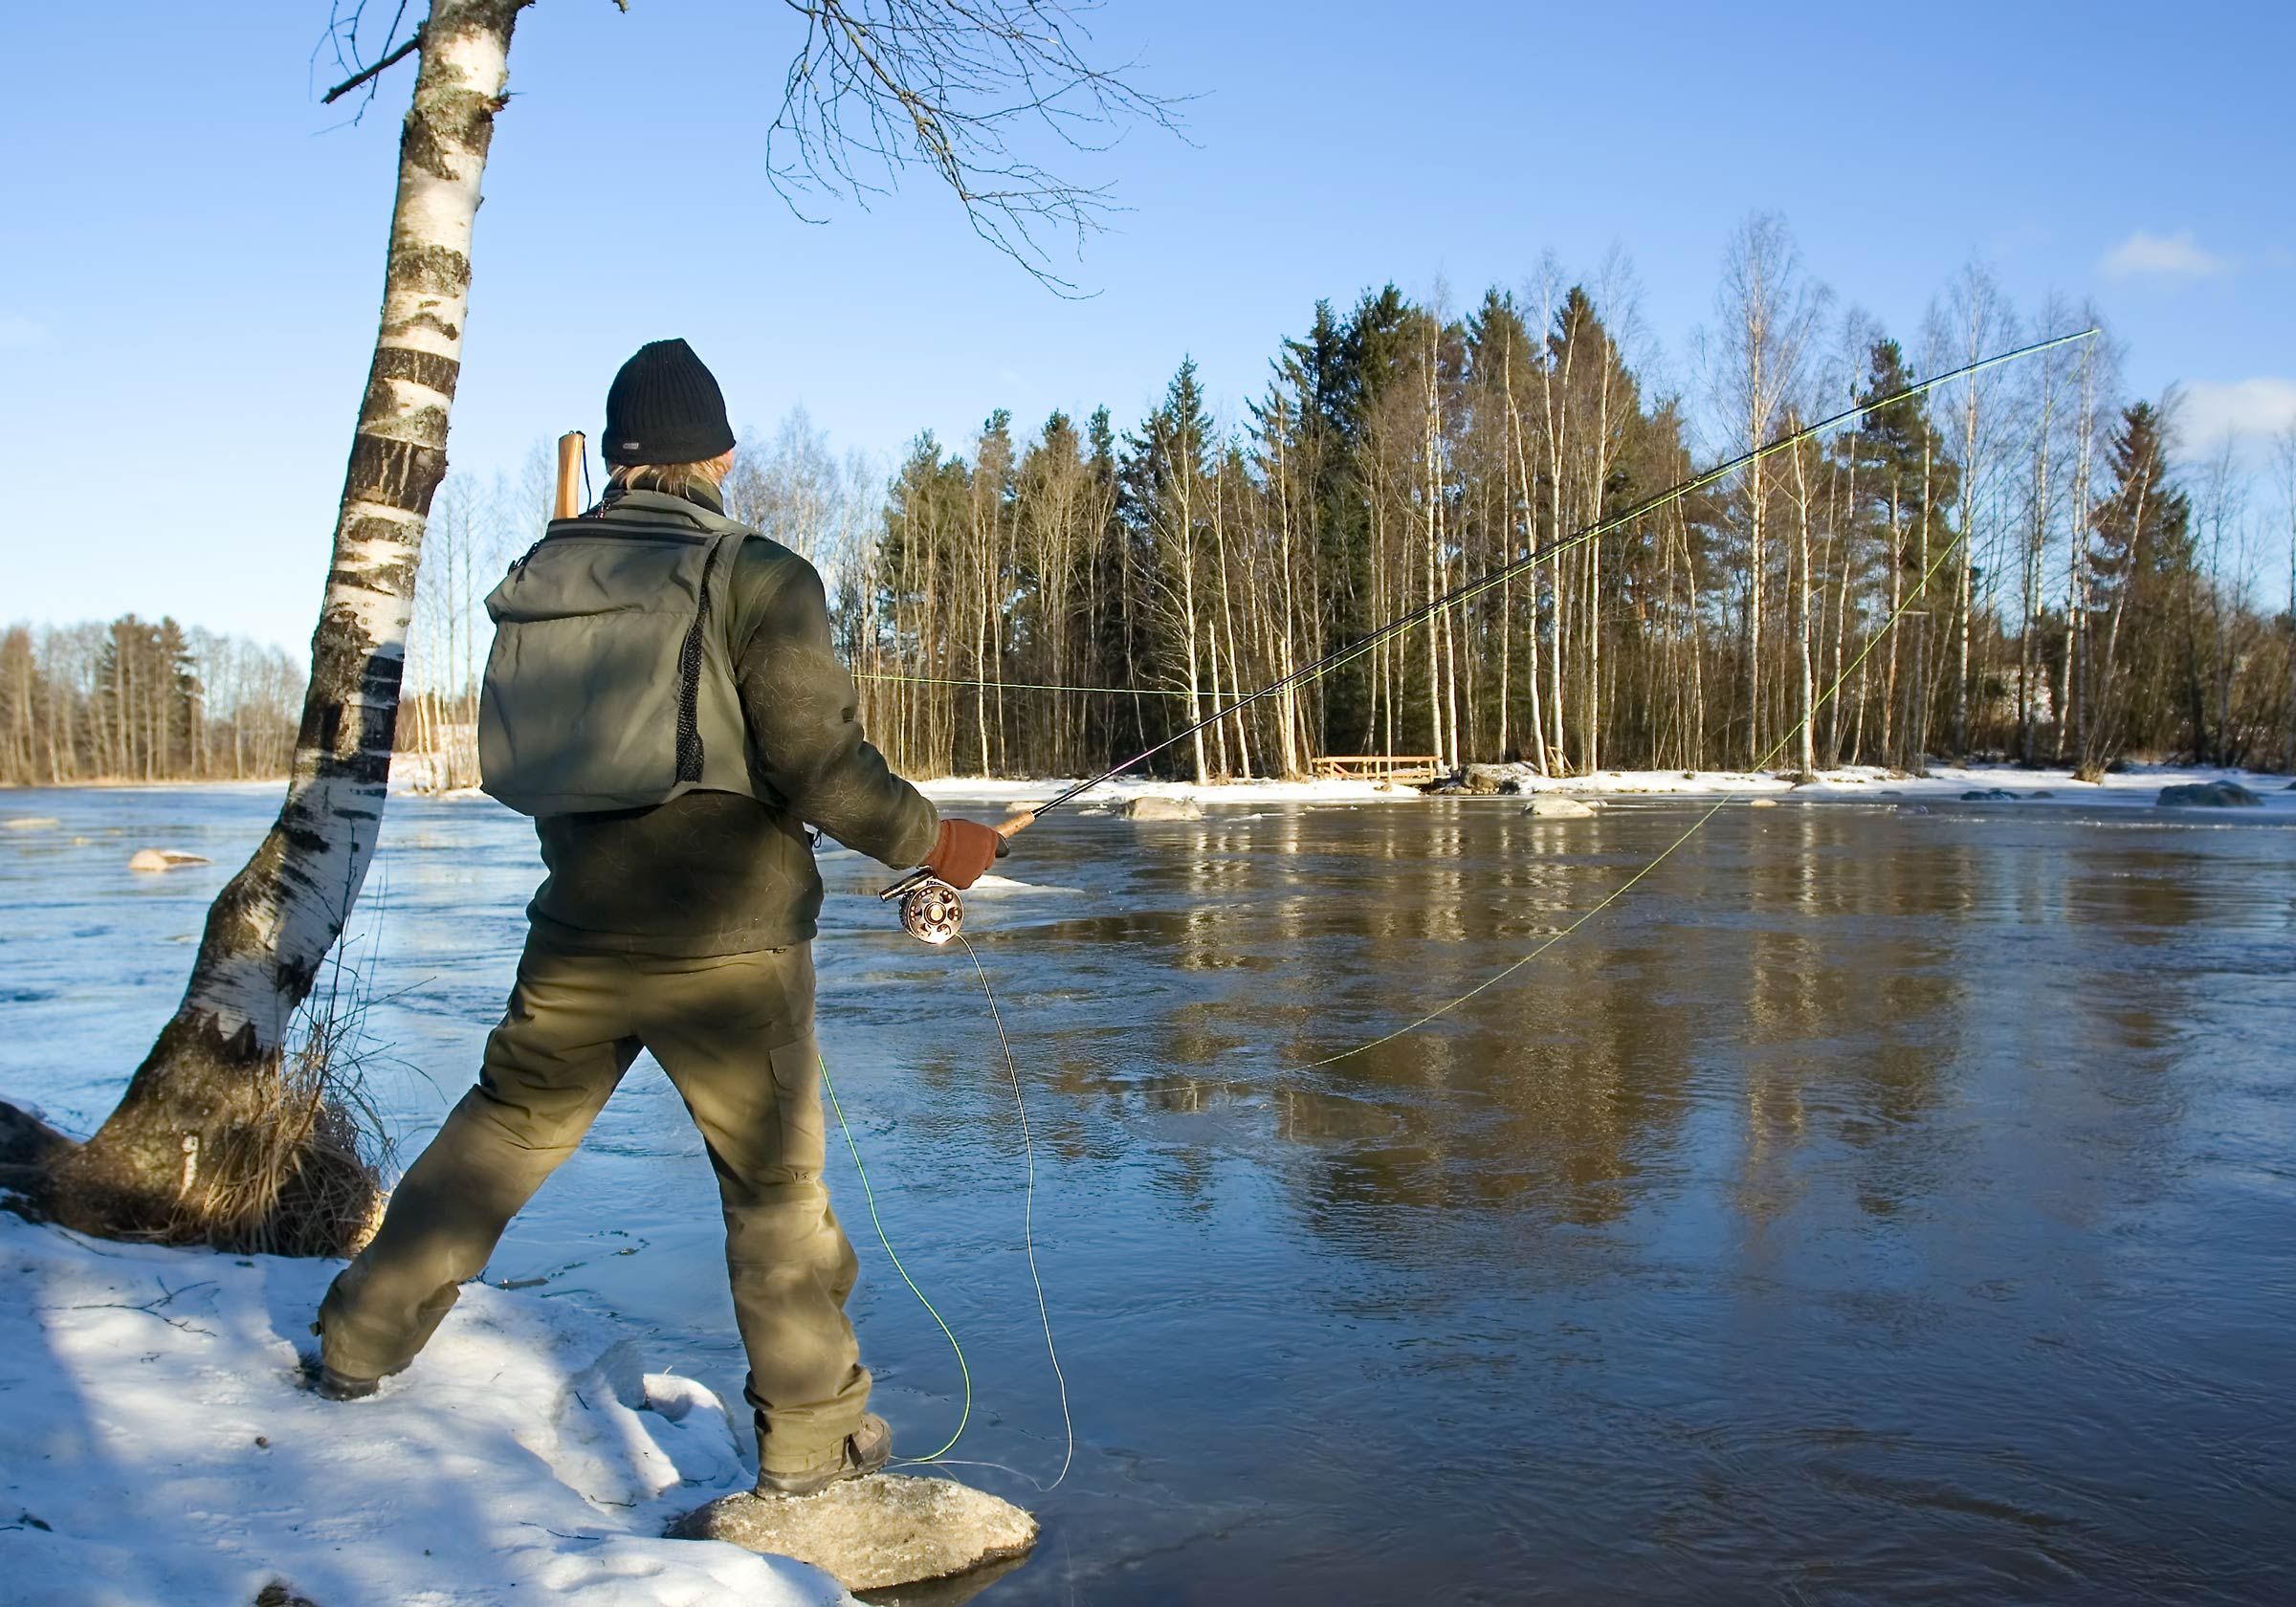 A fisherman fly fishing from a snow-covered lake shore